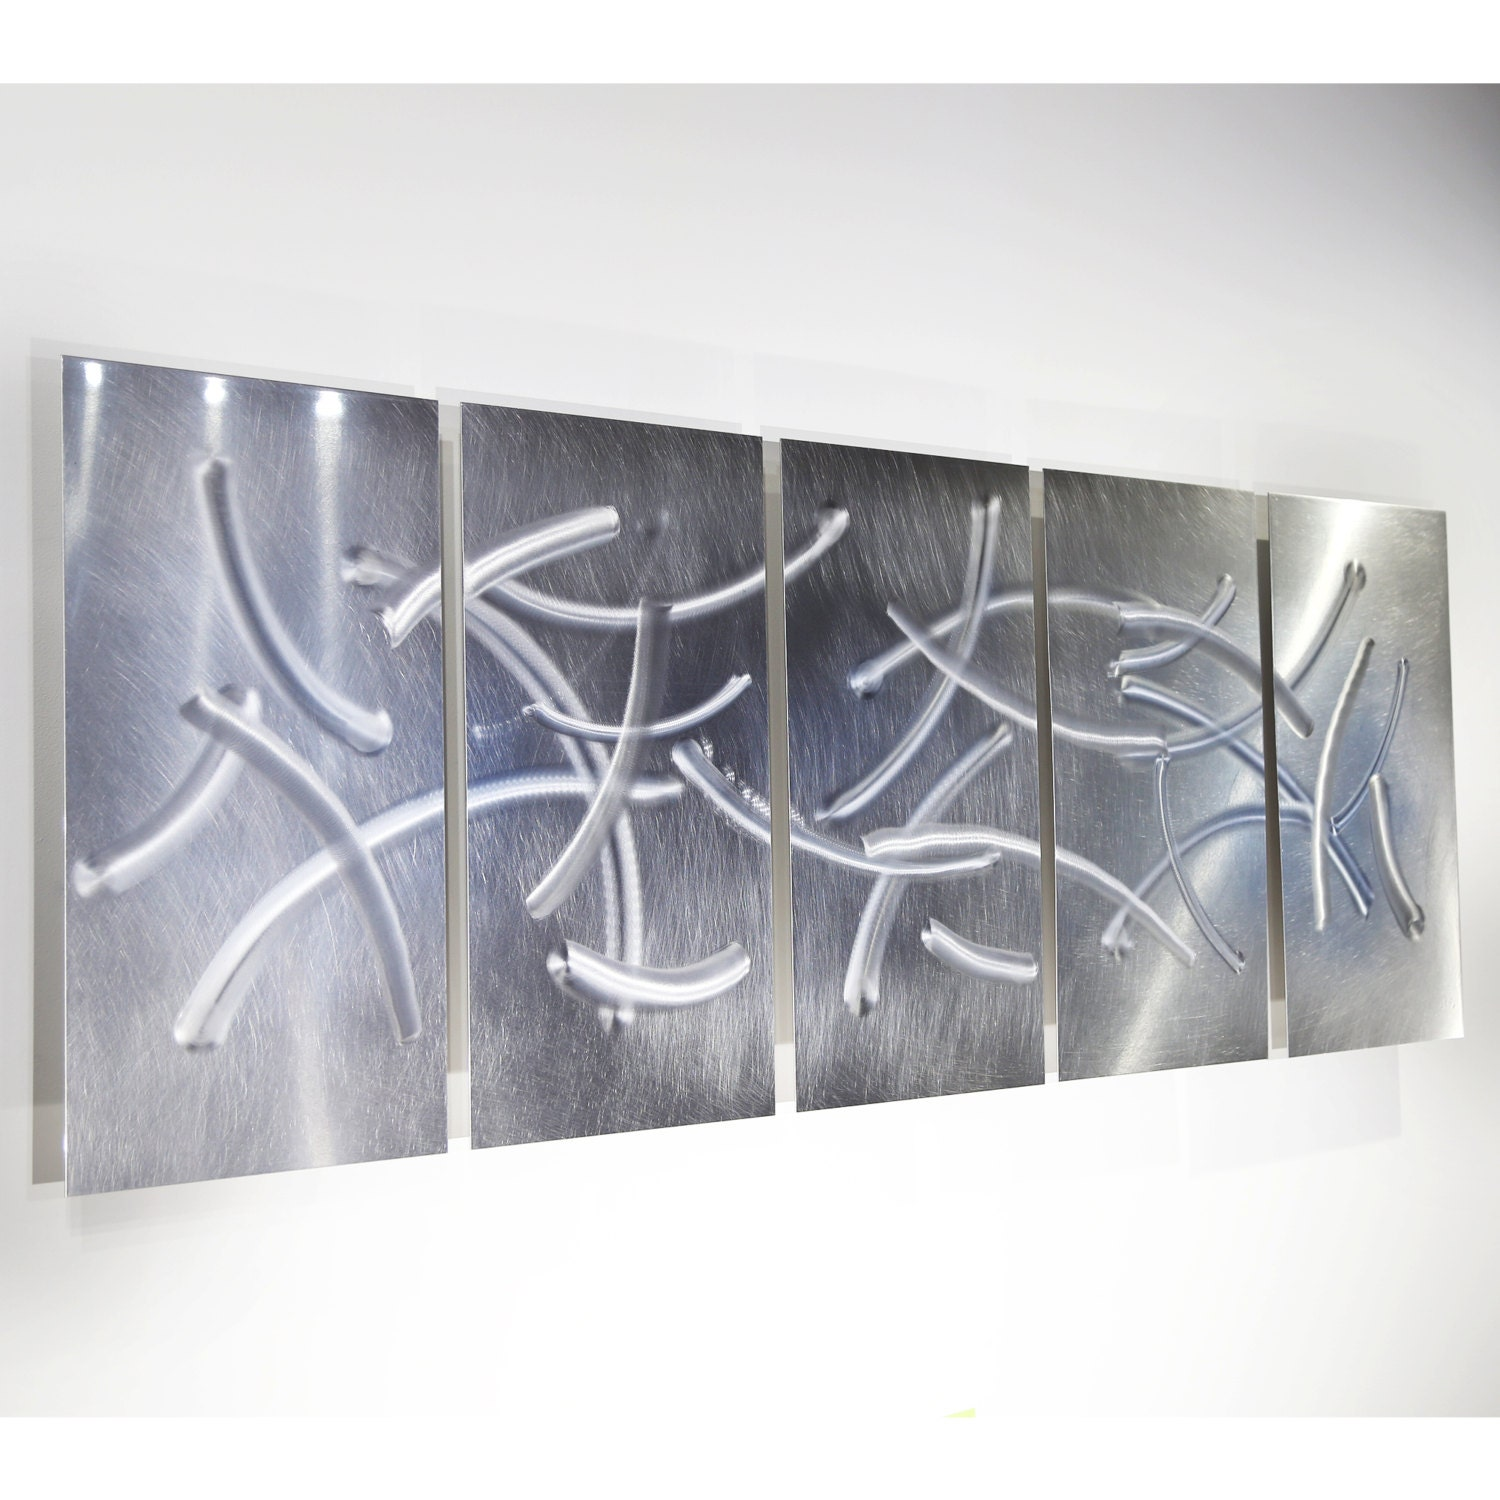 Metal Wall Decor Etsy : Silver etched modern metal wall art by jonallenmetalart on